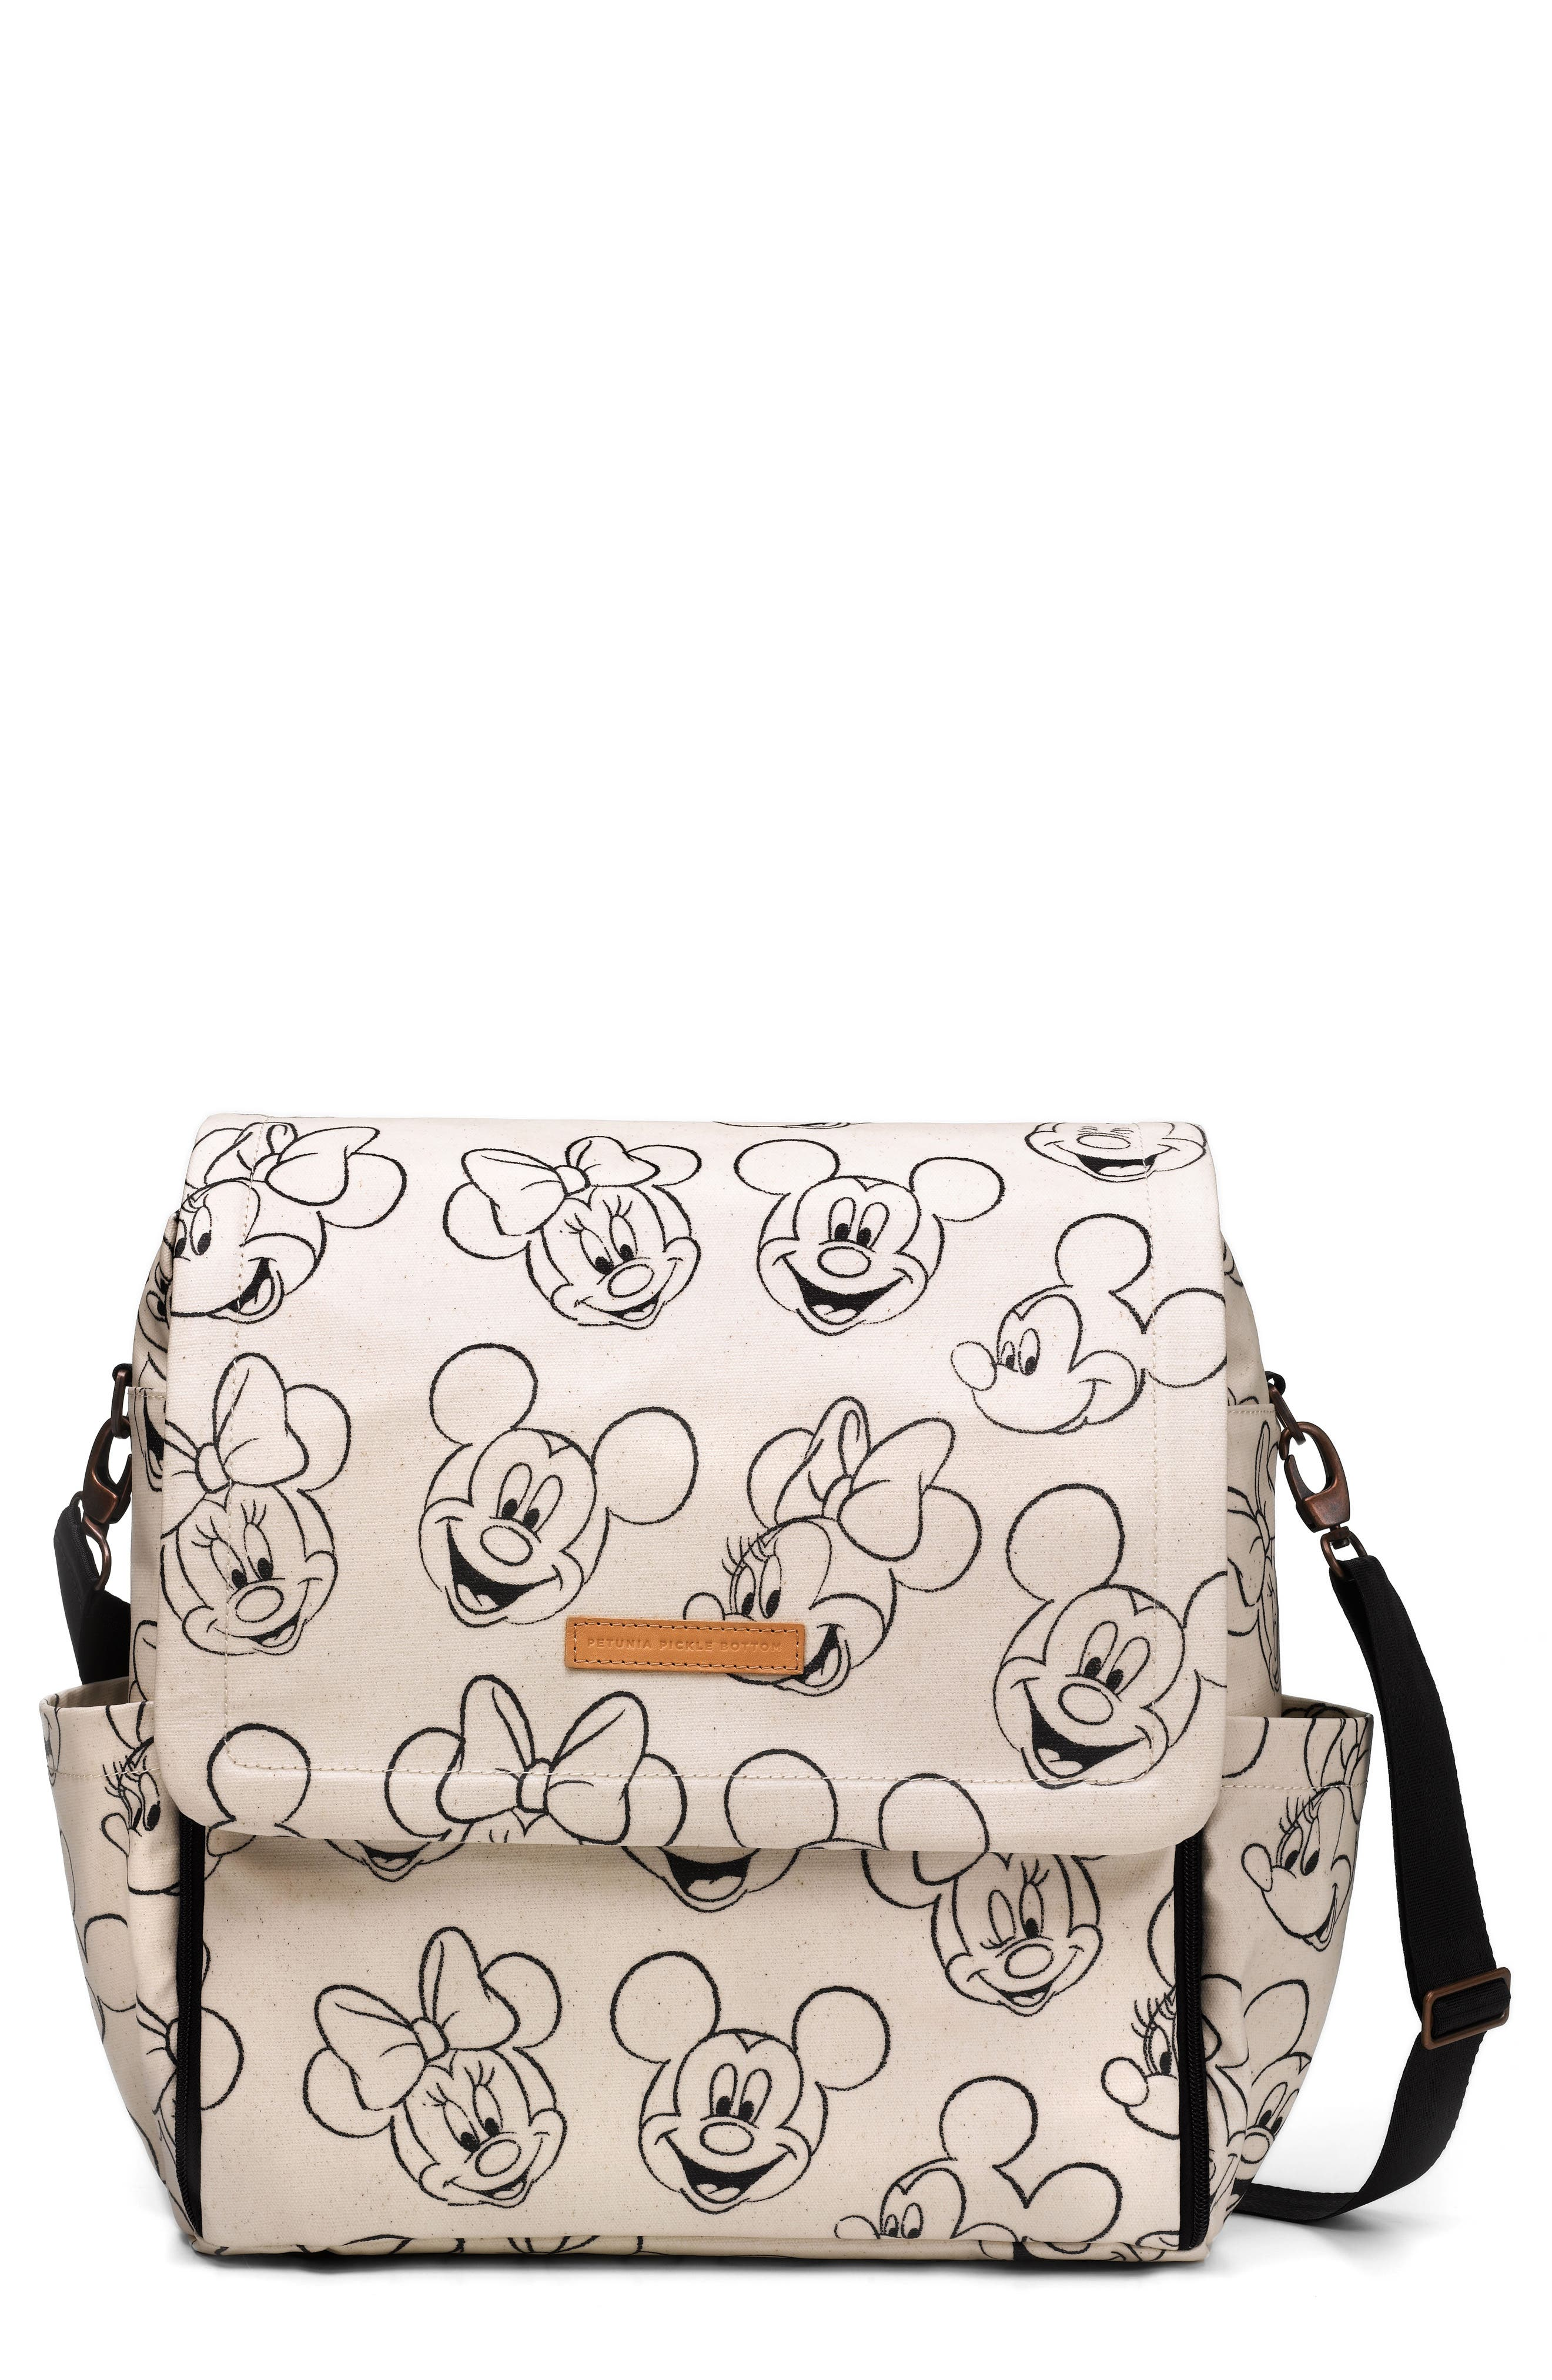 Petunia Pickle Bottom Boxy Backpack - Disney Diaper Bag